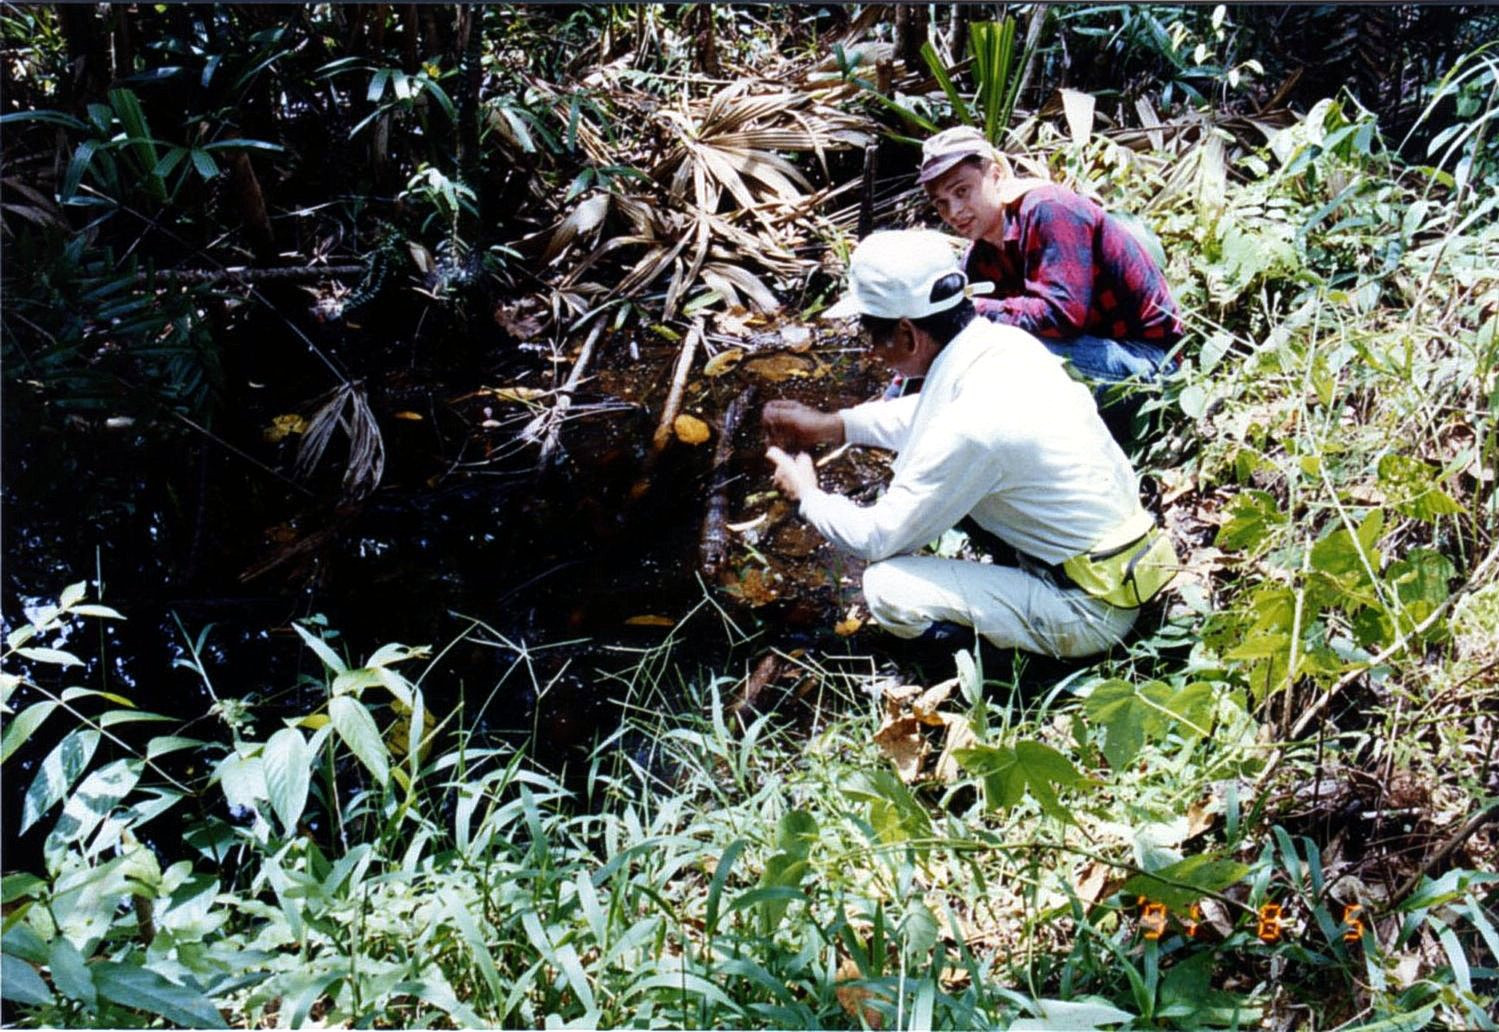 Prof. Dr Eitaro Wada, Dr Mariusz-Orion Jędrysek, Sampling In Tropical Forest, Tajlandia 1991-08-05